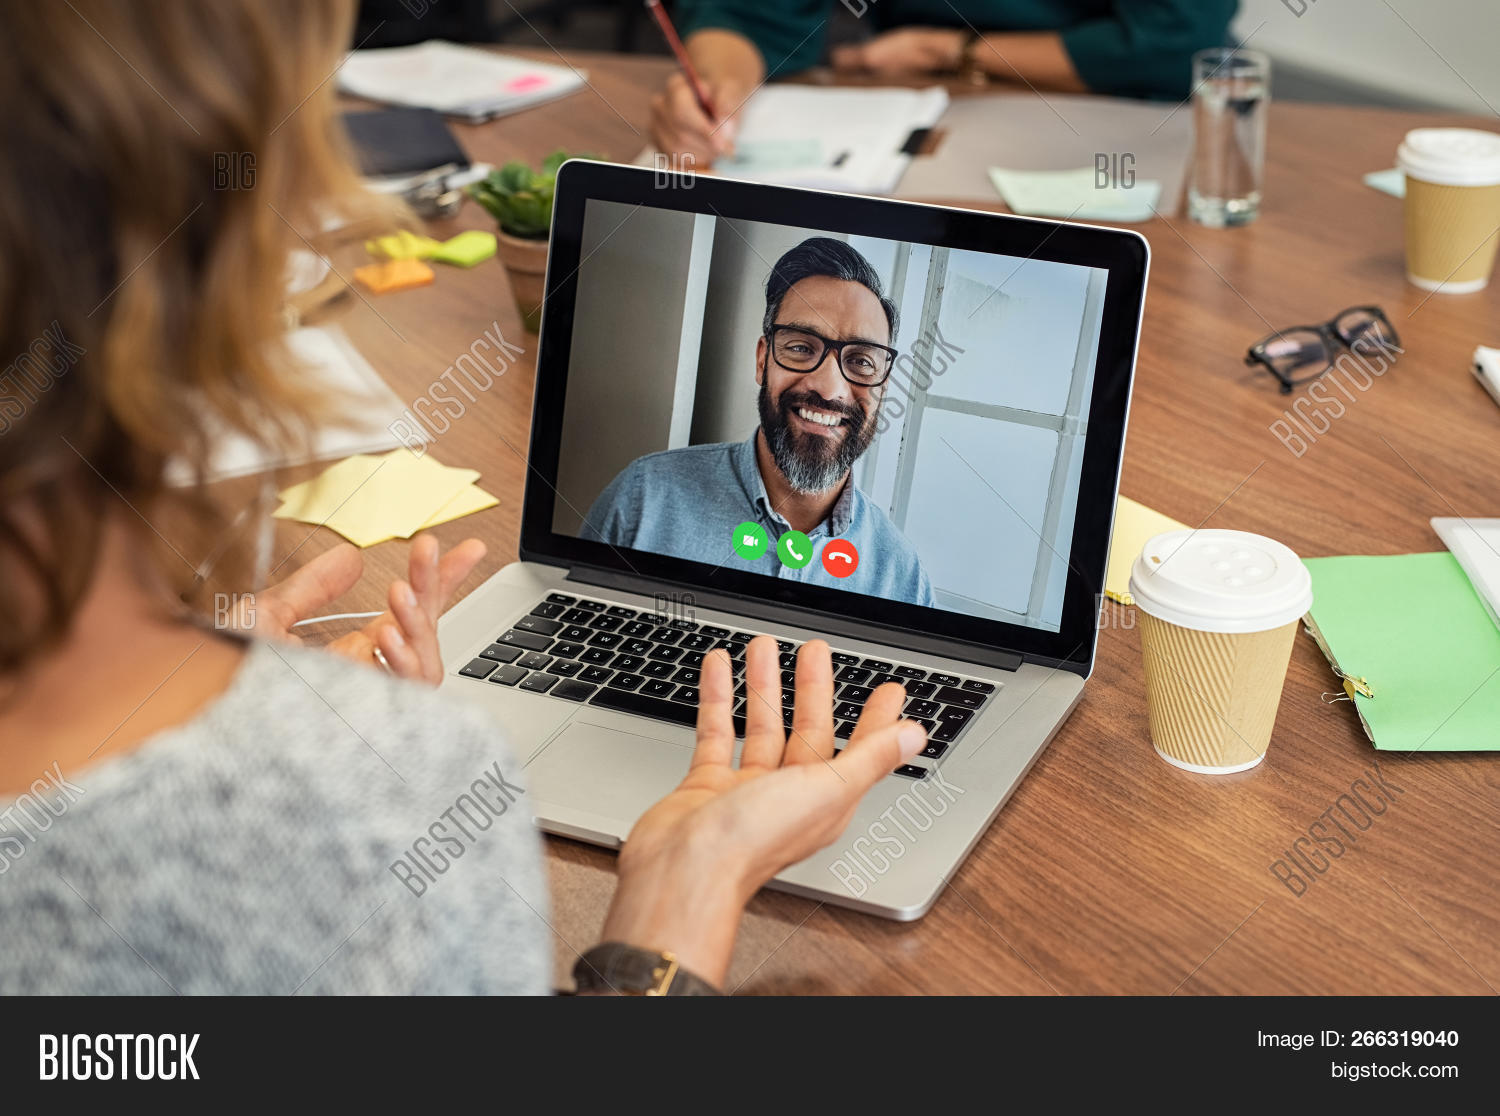 Portrait Smiling Man Image & Photo (Free Trial) | Bigstock